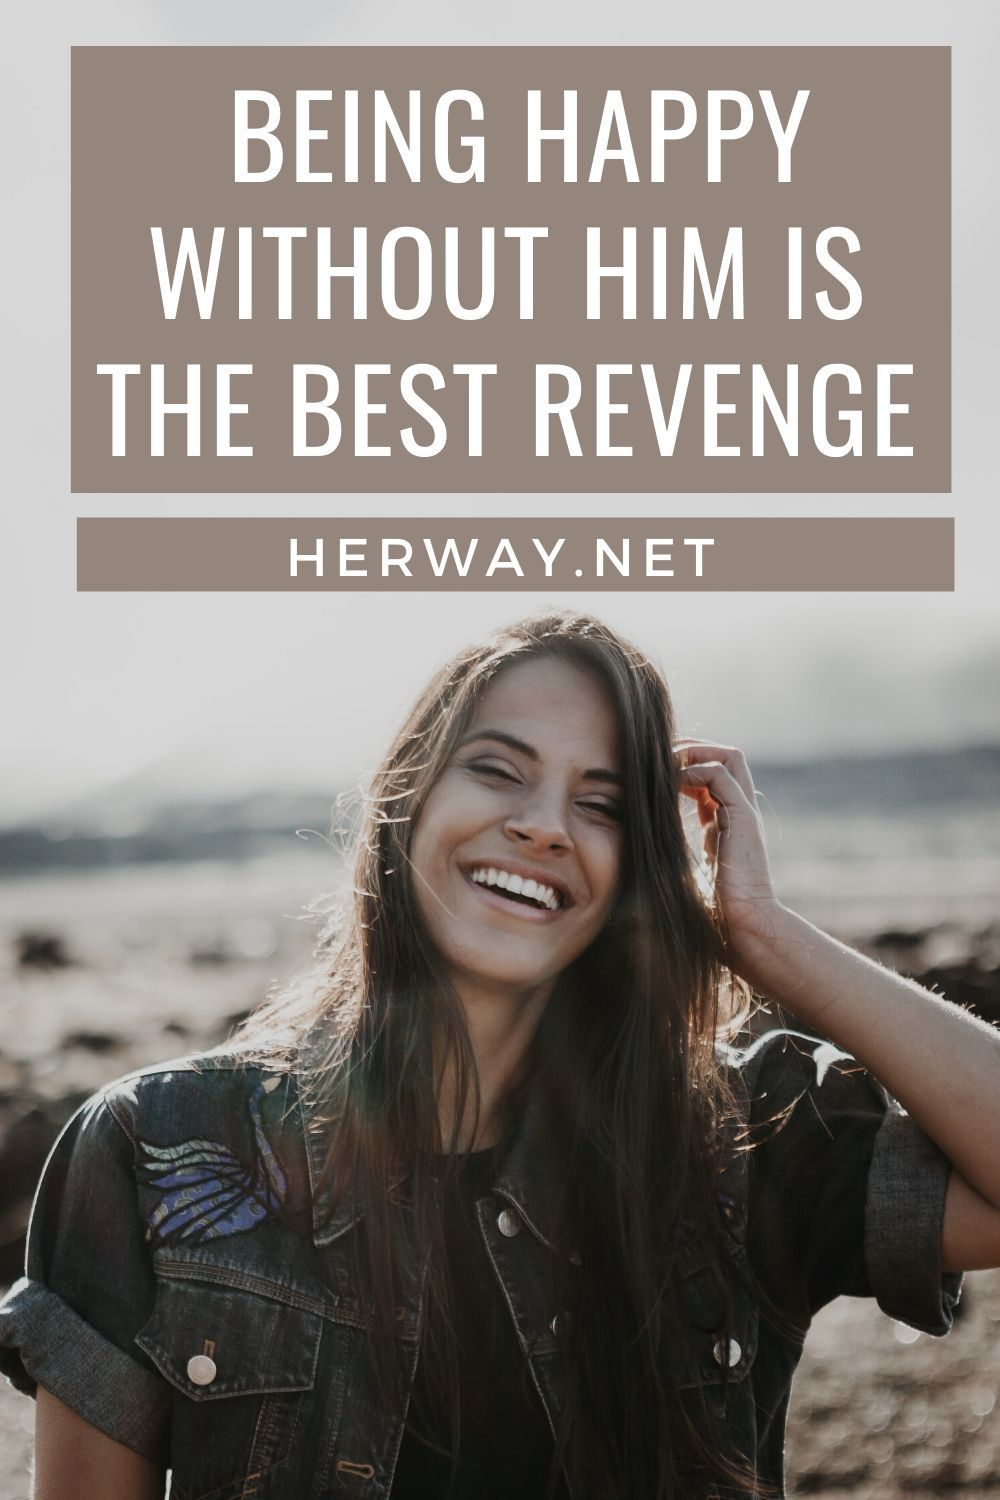 The minute you decide that you no longer need to prove anything to anyone is when you can proudly tell yourself that you've made it.   #Dating #Relationship #Feelings #LoveTips  #DatingandRelationship #Advice #Alone #Single  #Singlelife #Selfconfidence #Personaldevelopment #Selfesteem #Womenpower #Girlpower #Happiness #Herway